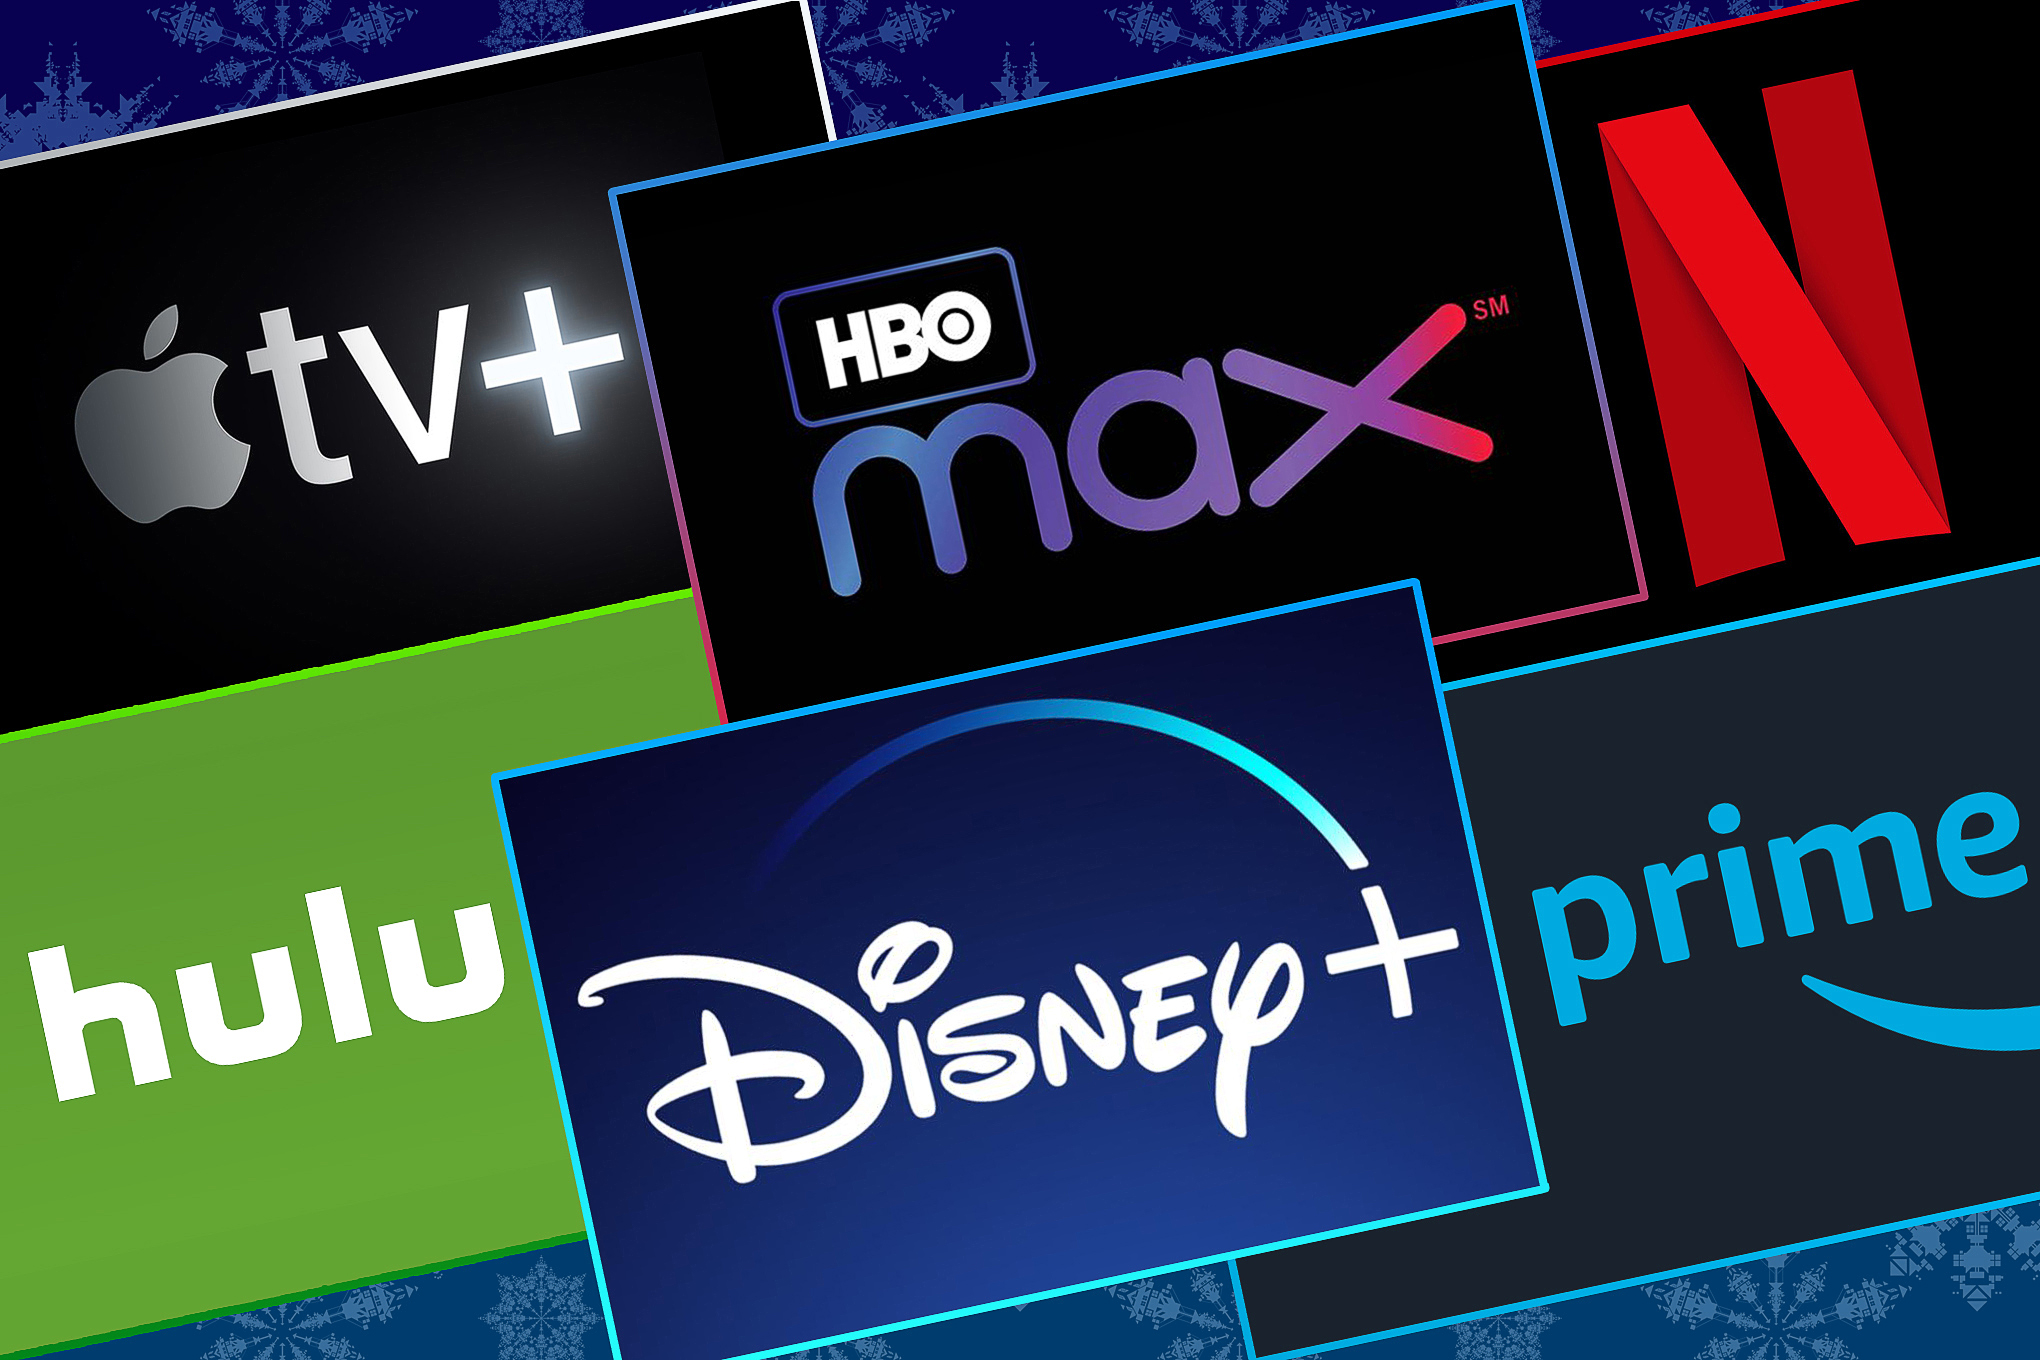 Graphic grid with the logos of major streaming companies